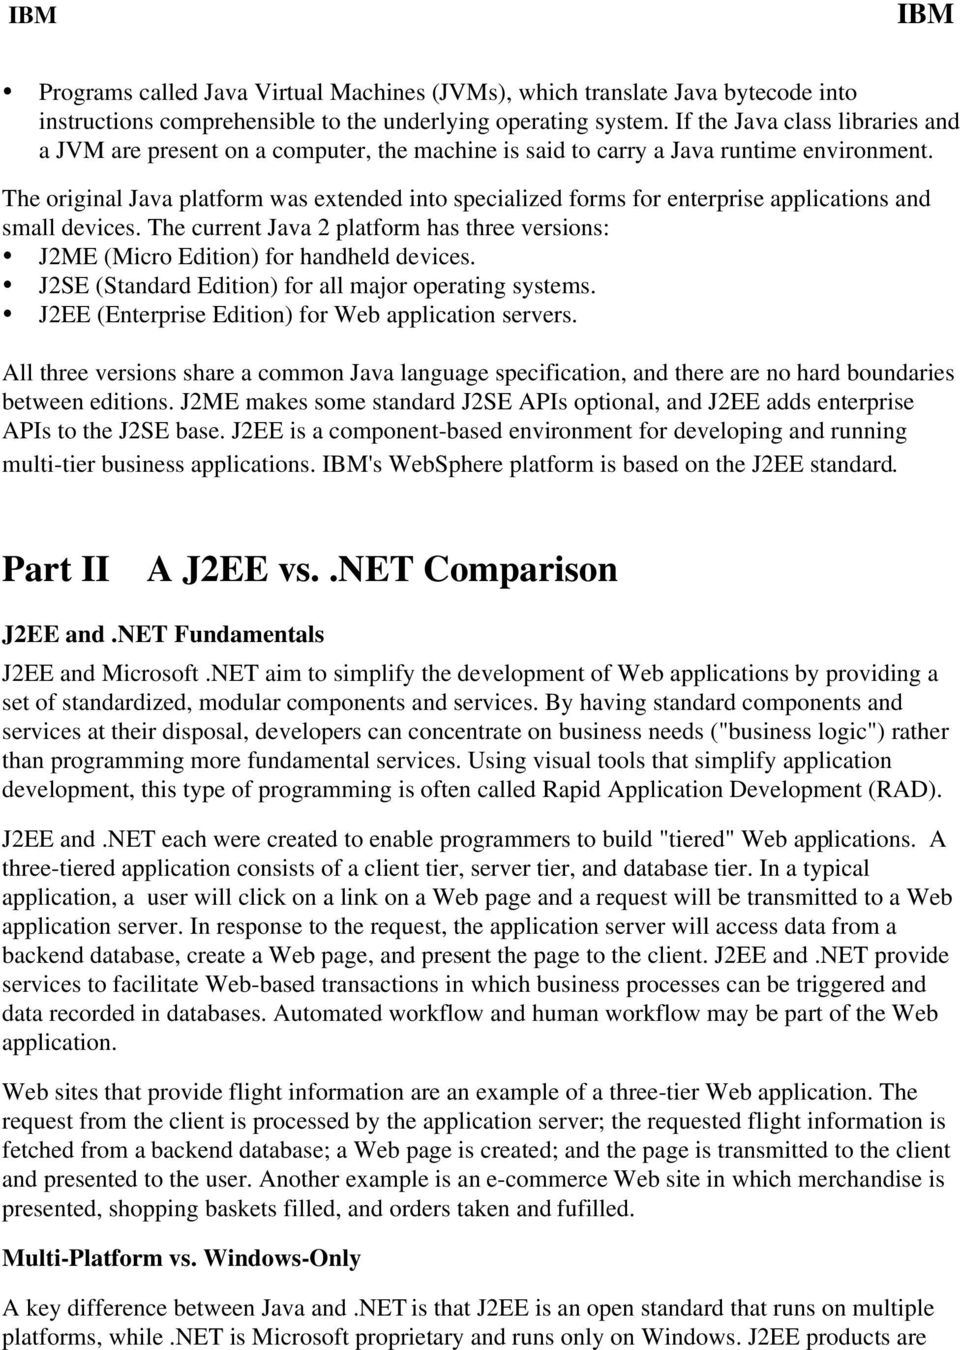 The original Java platform was extended into specialized forms for enterprise applications and small devices. The current Java 2 platform has three versions: J2ME (Micro Edition) for handheld devices.